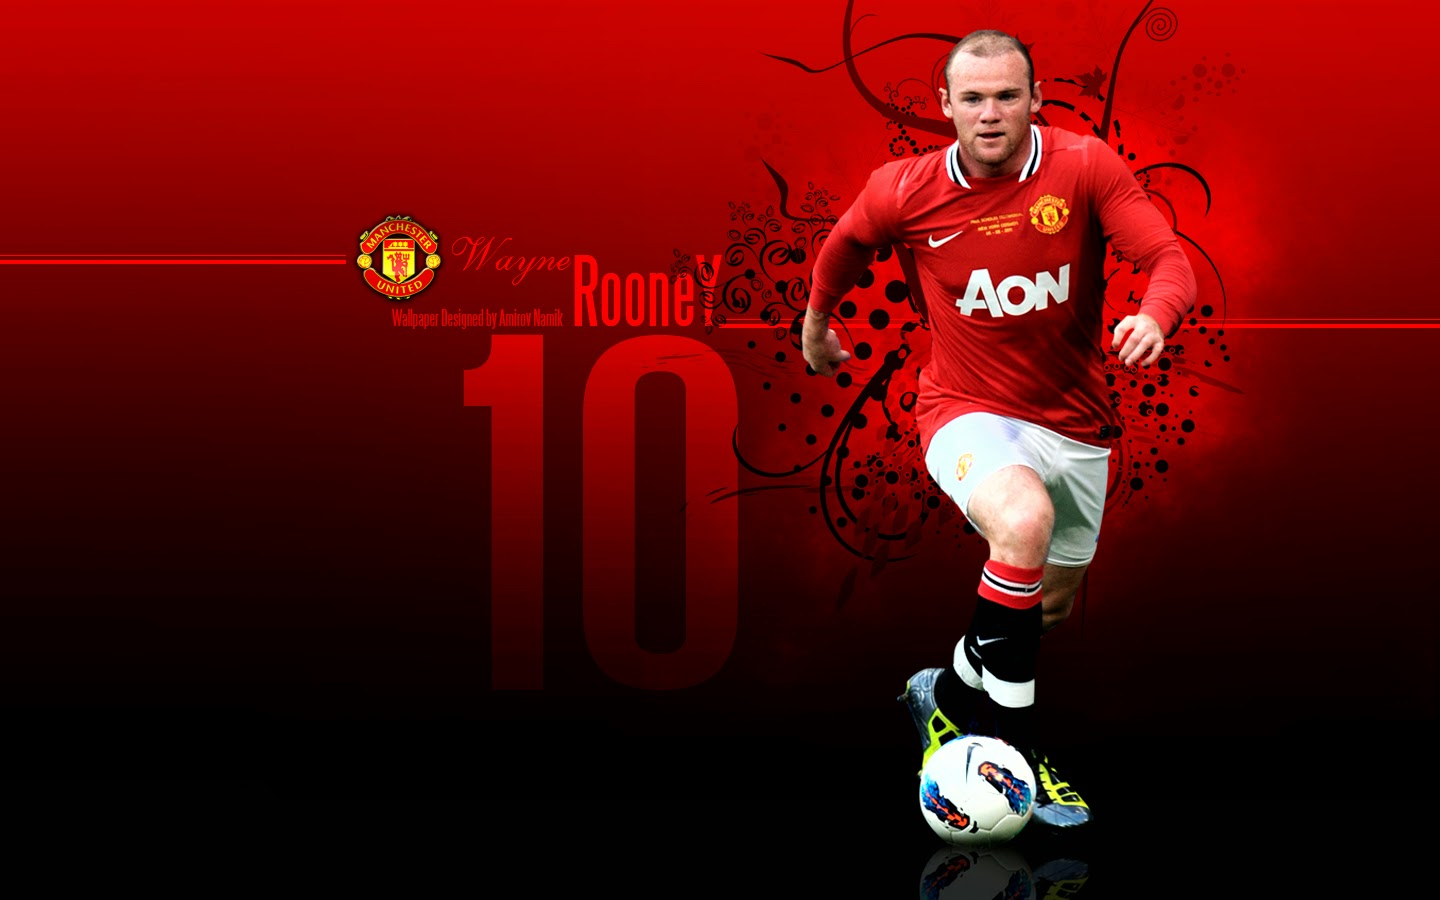 Wayne Rooney Wallpapers 2014 Wayne Rooney HD Wallpapers FOOTBALL STARS WORLD